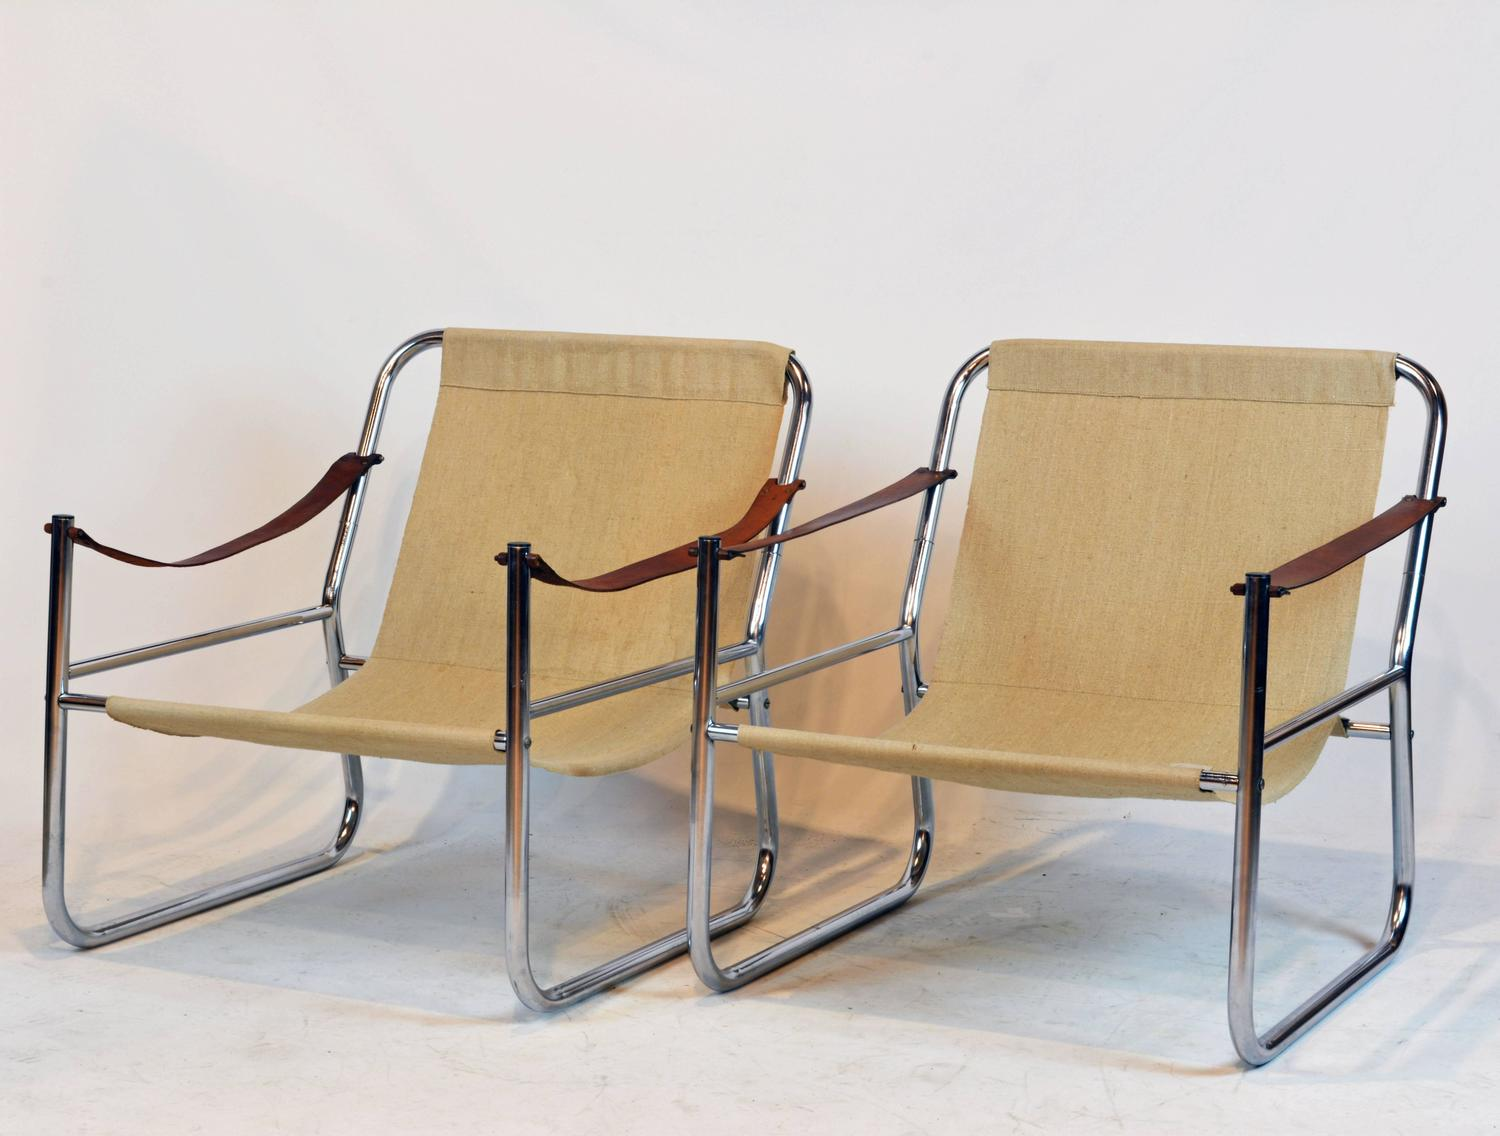 toddler lounge chair with straps homedics reclining massage pair of mid century modern chrome and leather